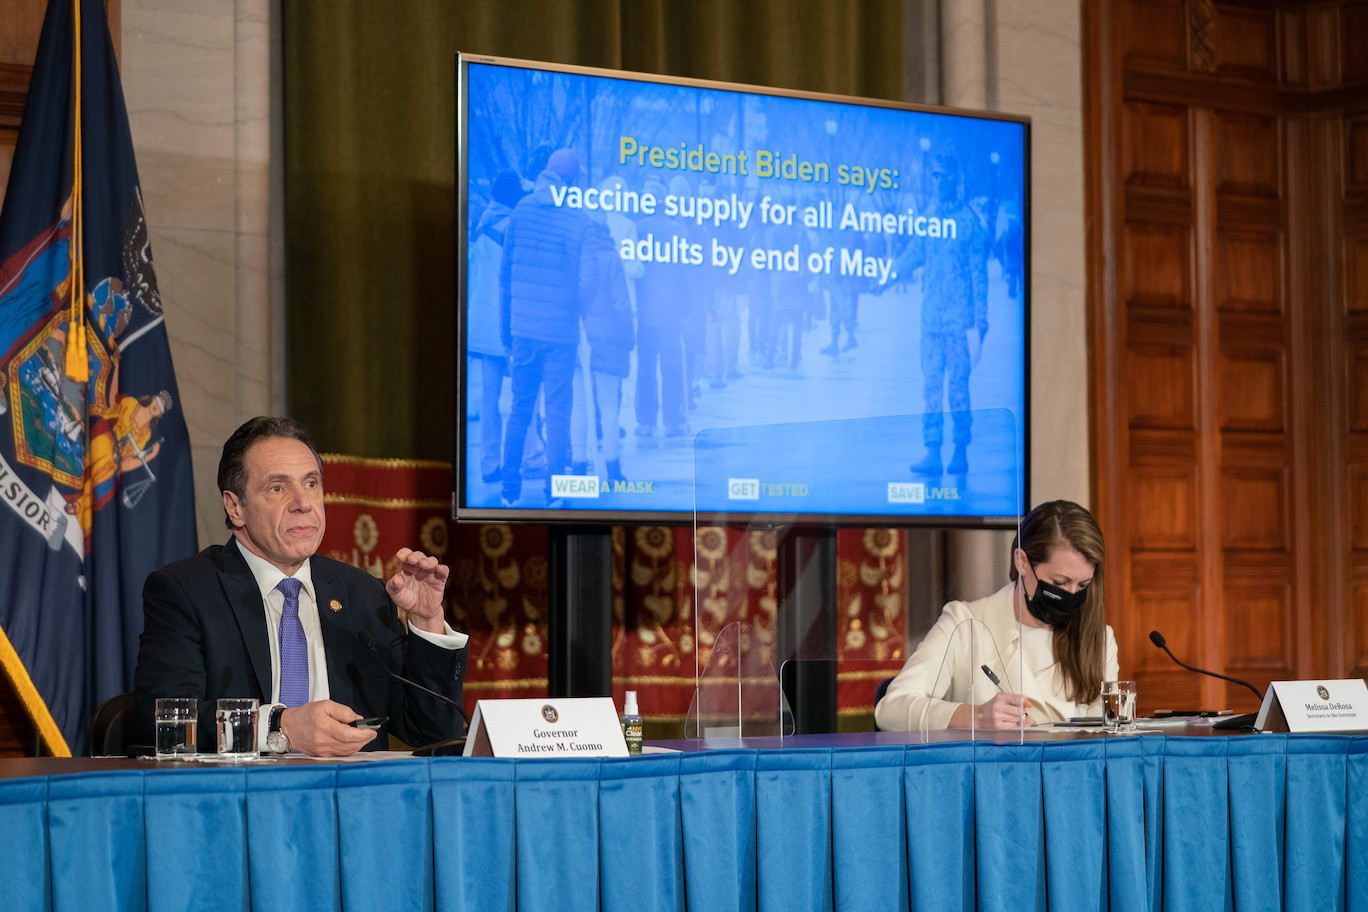 Gov. Andrew Cuomo issued an apology Wednesday at the end of his coronavirus update from the Red Room at the State Capitol. (Photo by Don Pollsrd/Office of Gov. Andrew M. Cuomo)